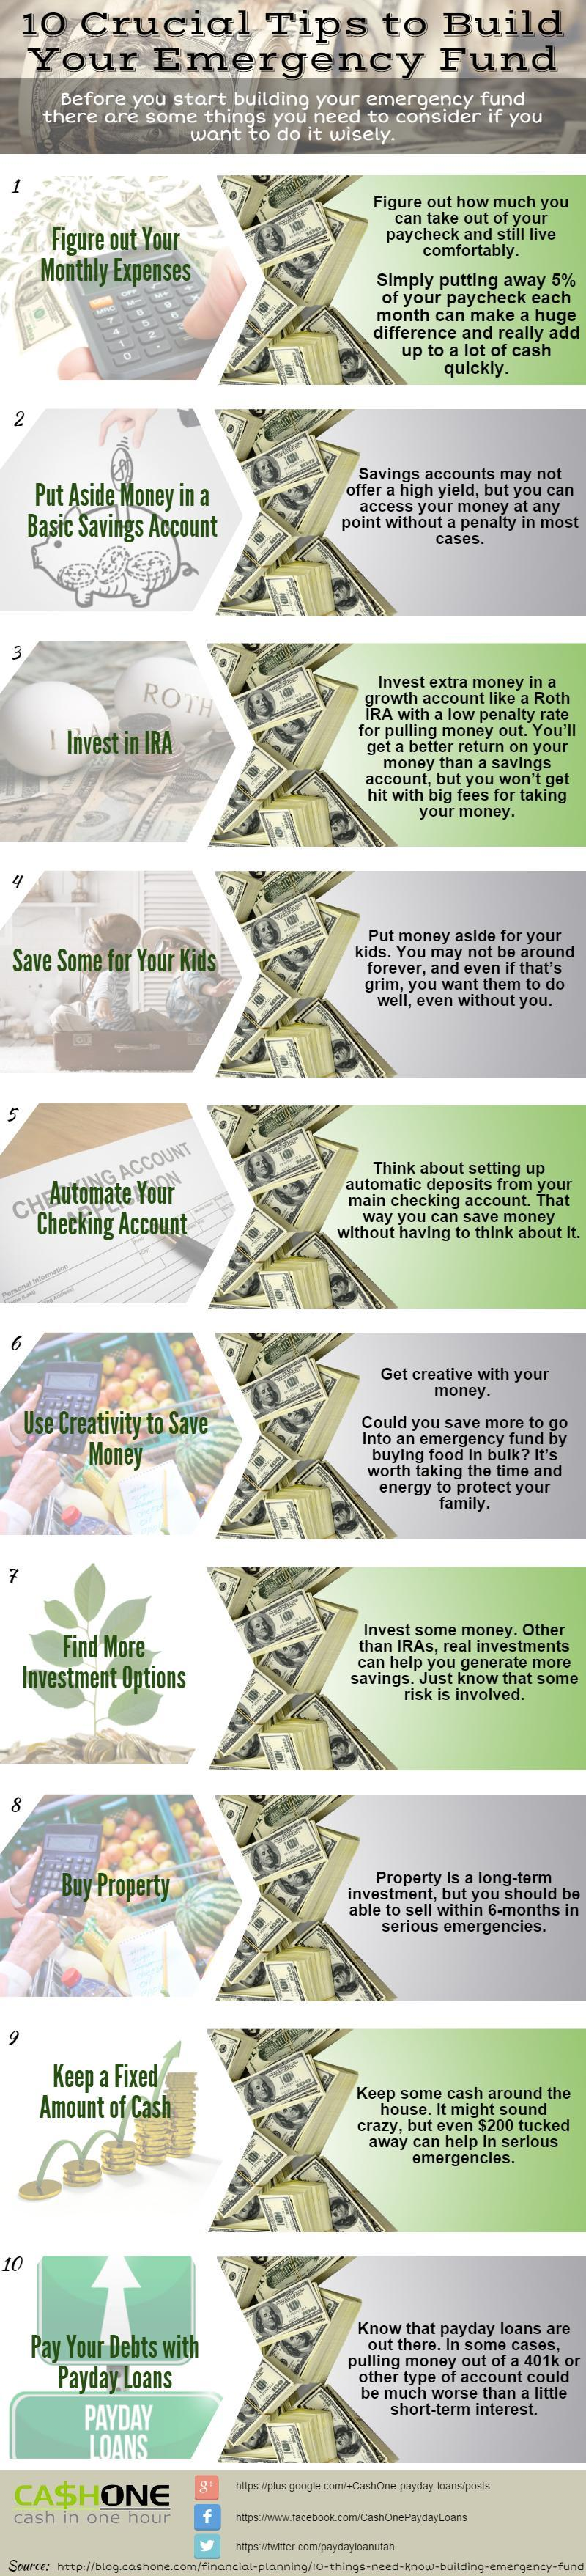 Crucial Tips to Build Your Emergency Fund - Infographic